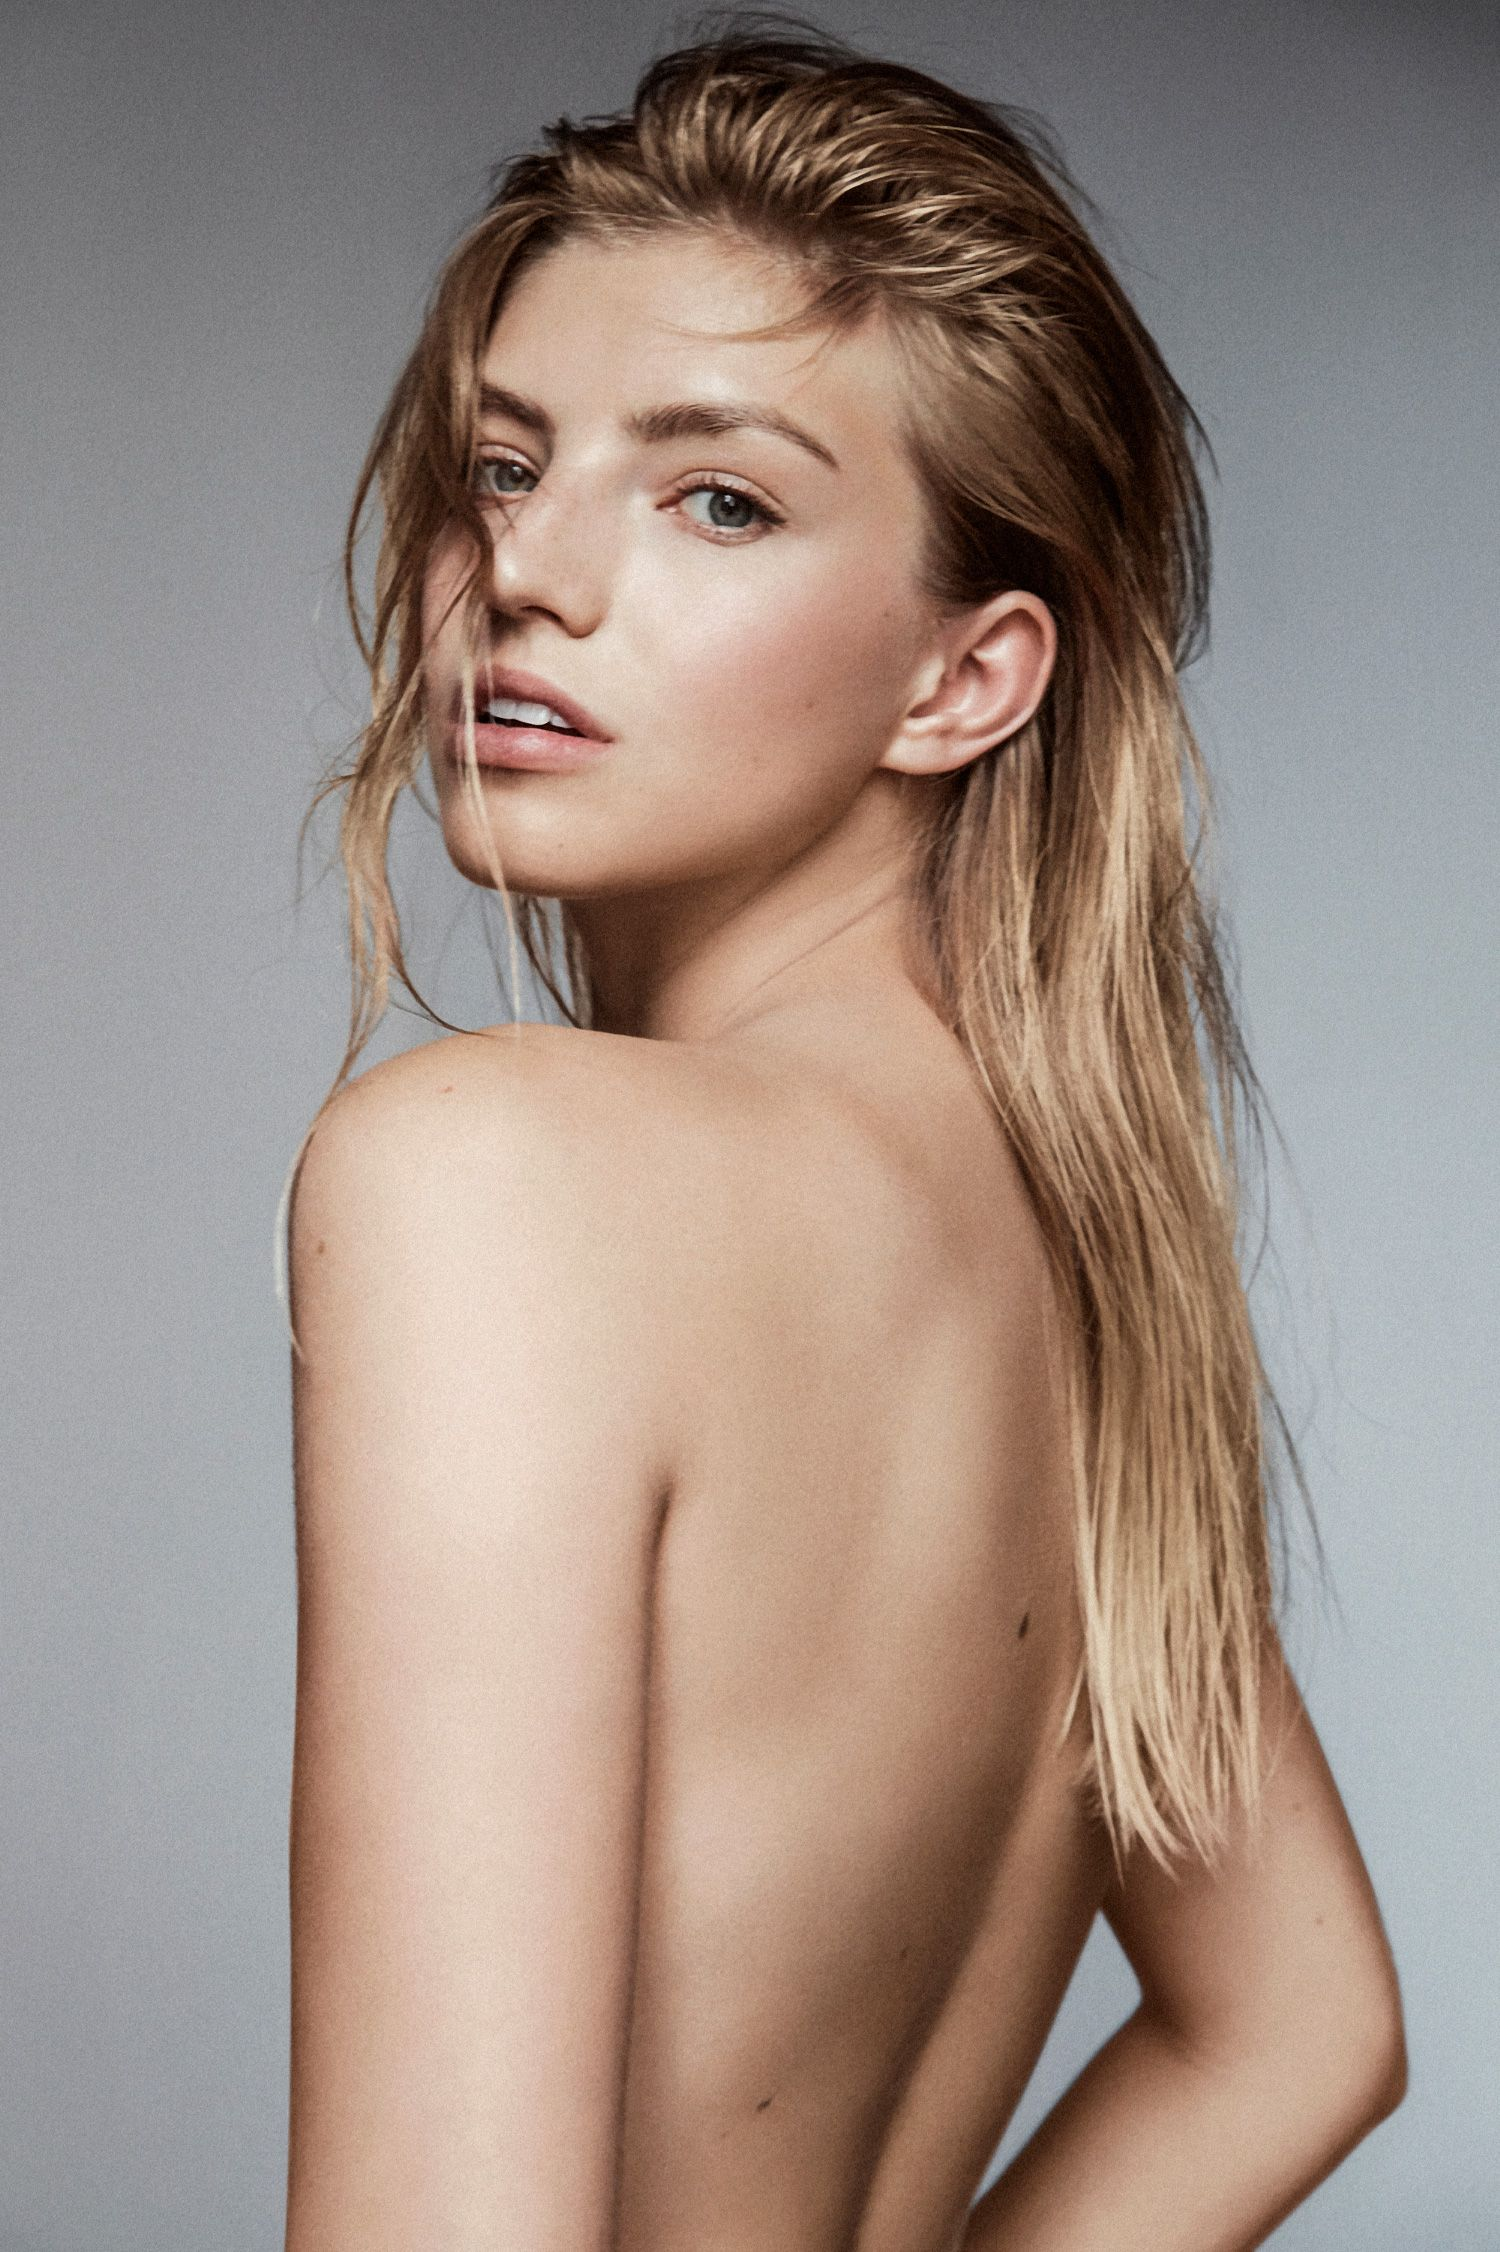 Niamh Adkins nude (55 photos), young Sideboobs, Instagram, swimsuit 2018